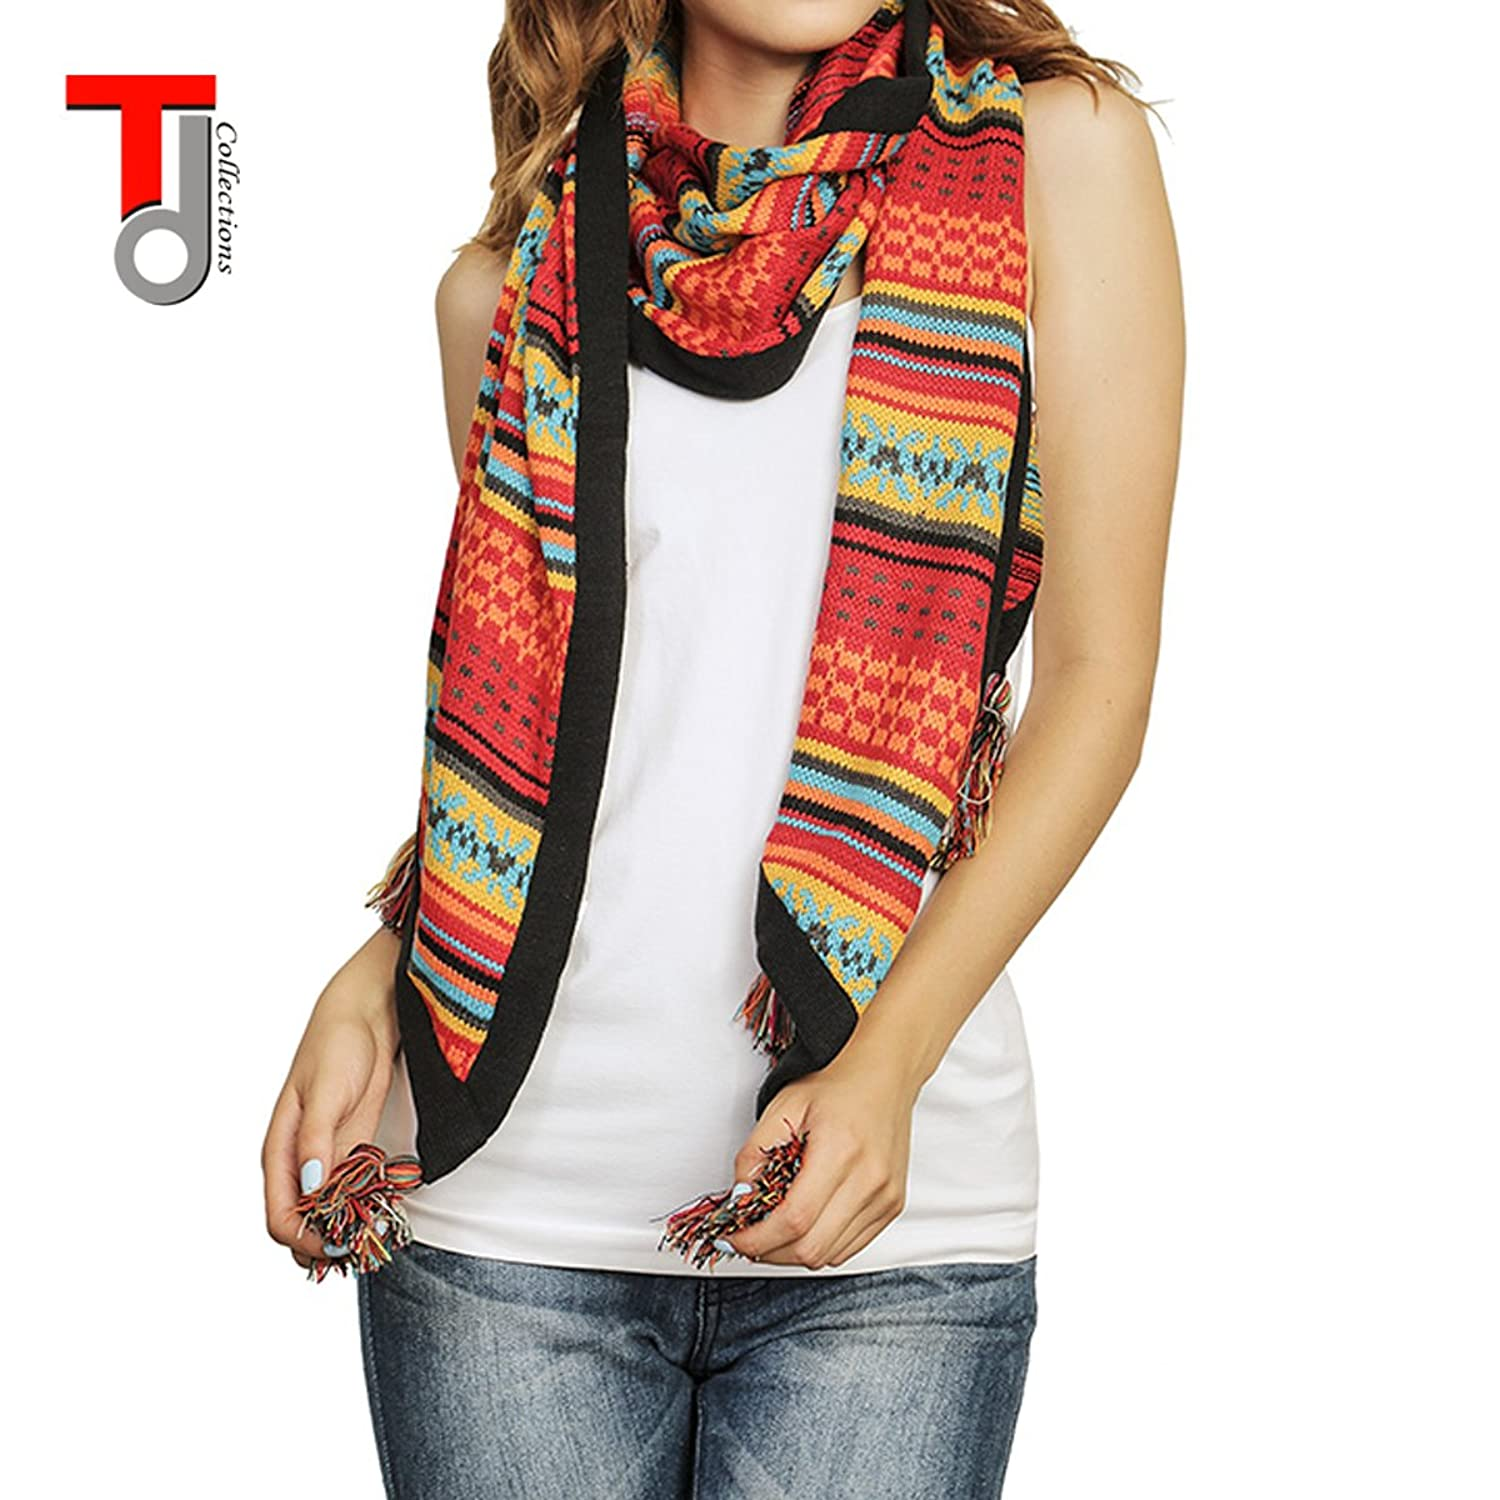 Women's Reversible Plaid Design Oversized Winter Scarf - Red